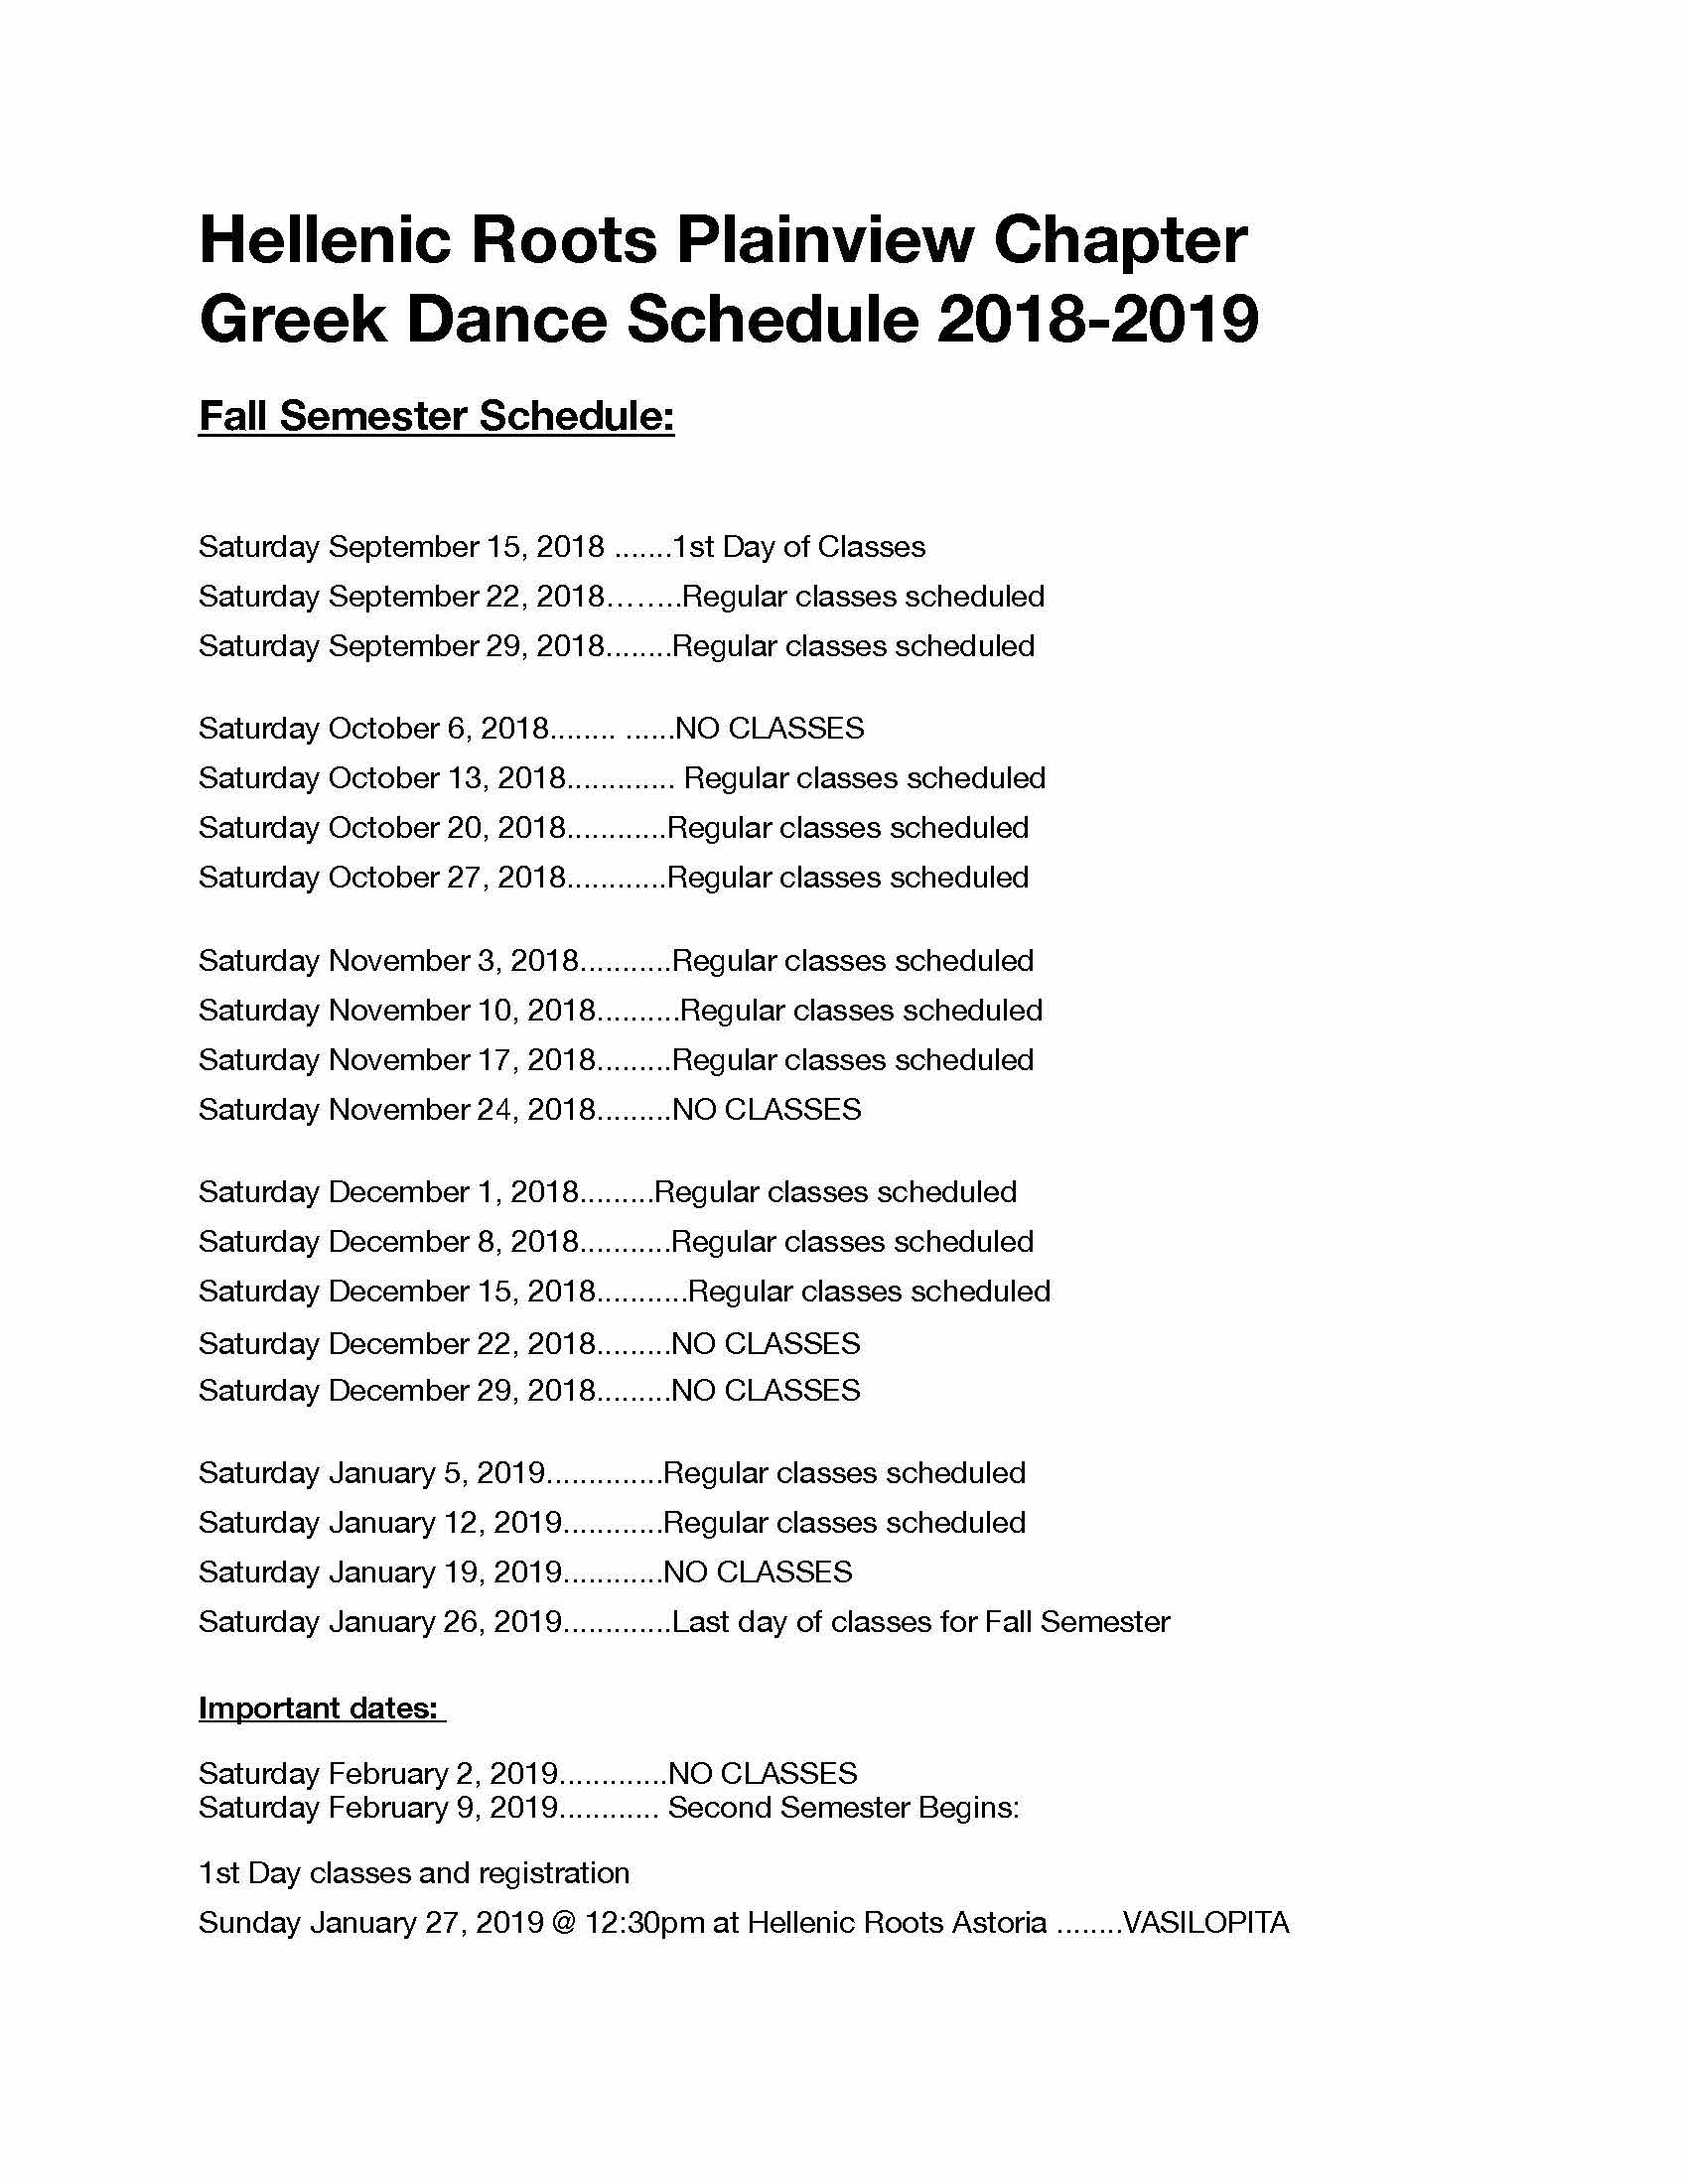 Hellenic Roots Plainview Class Schedule Fall 2018